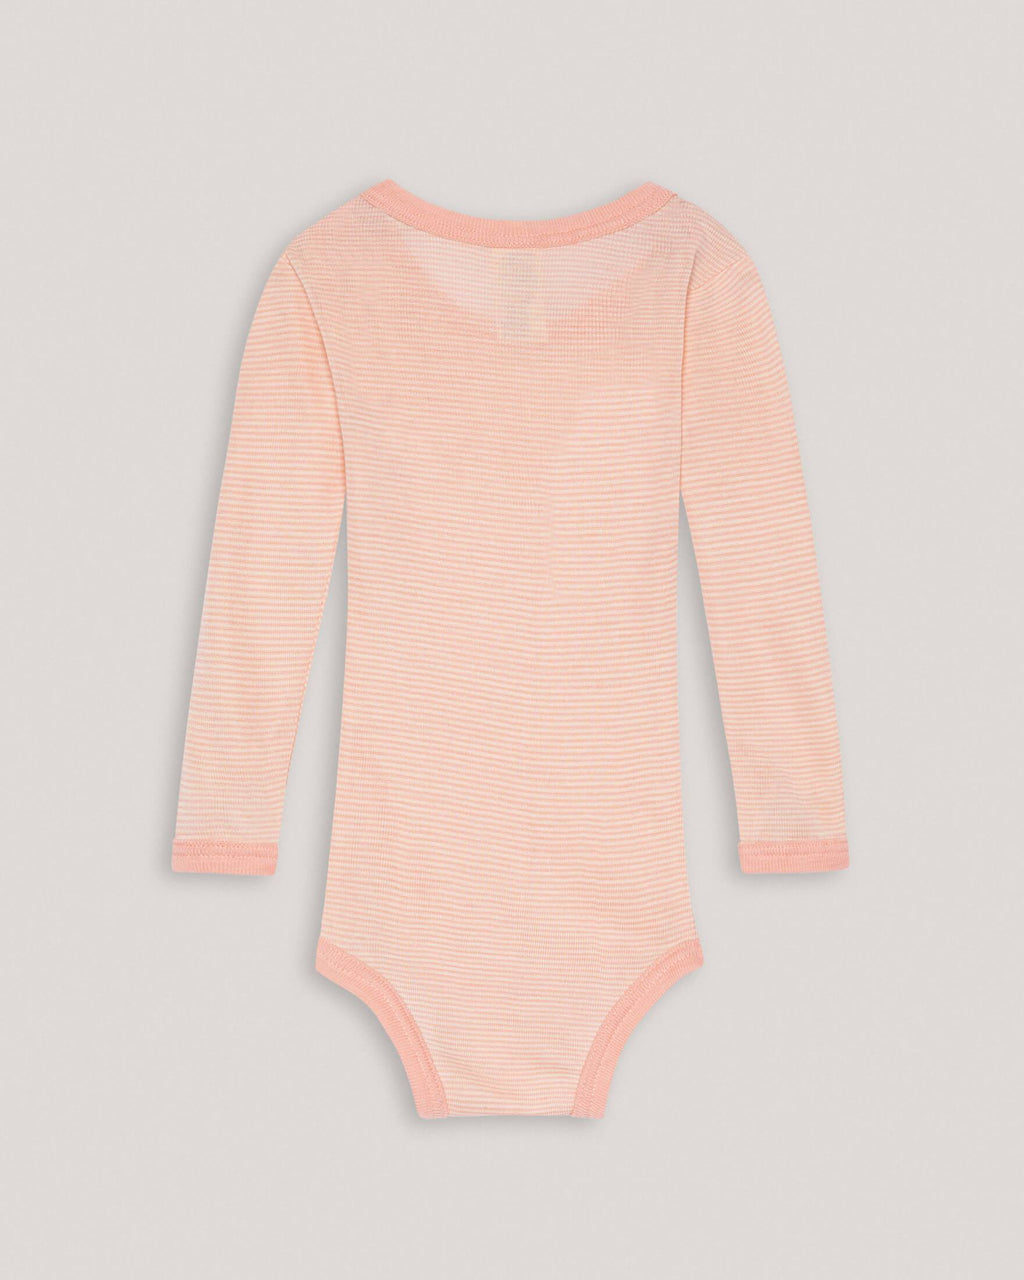 variant_3 | EN Pink Baby Longsleeve Body with Stripes ENGEL | DE Rosa Baby Langarmbody Body mit Streifen ENGEL